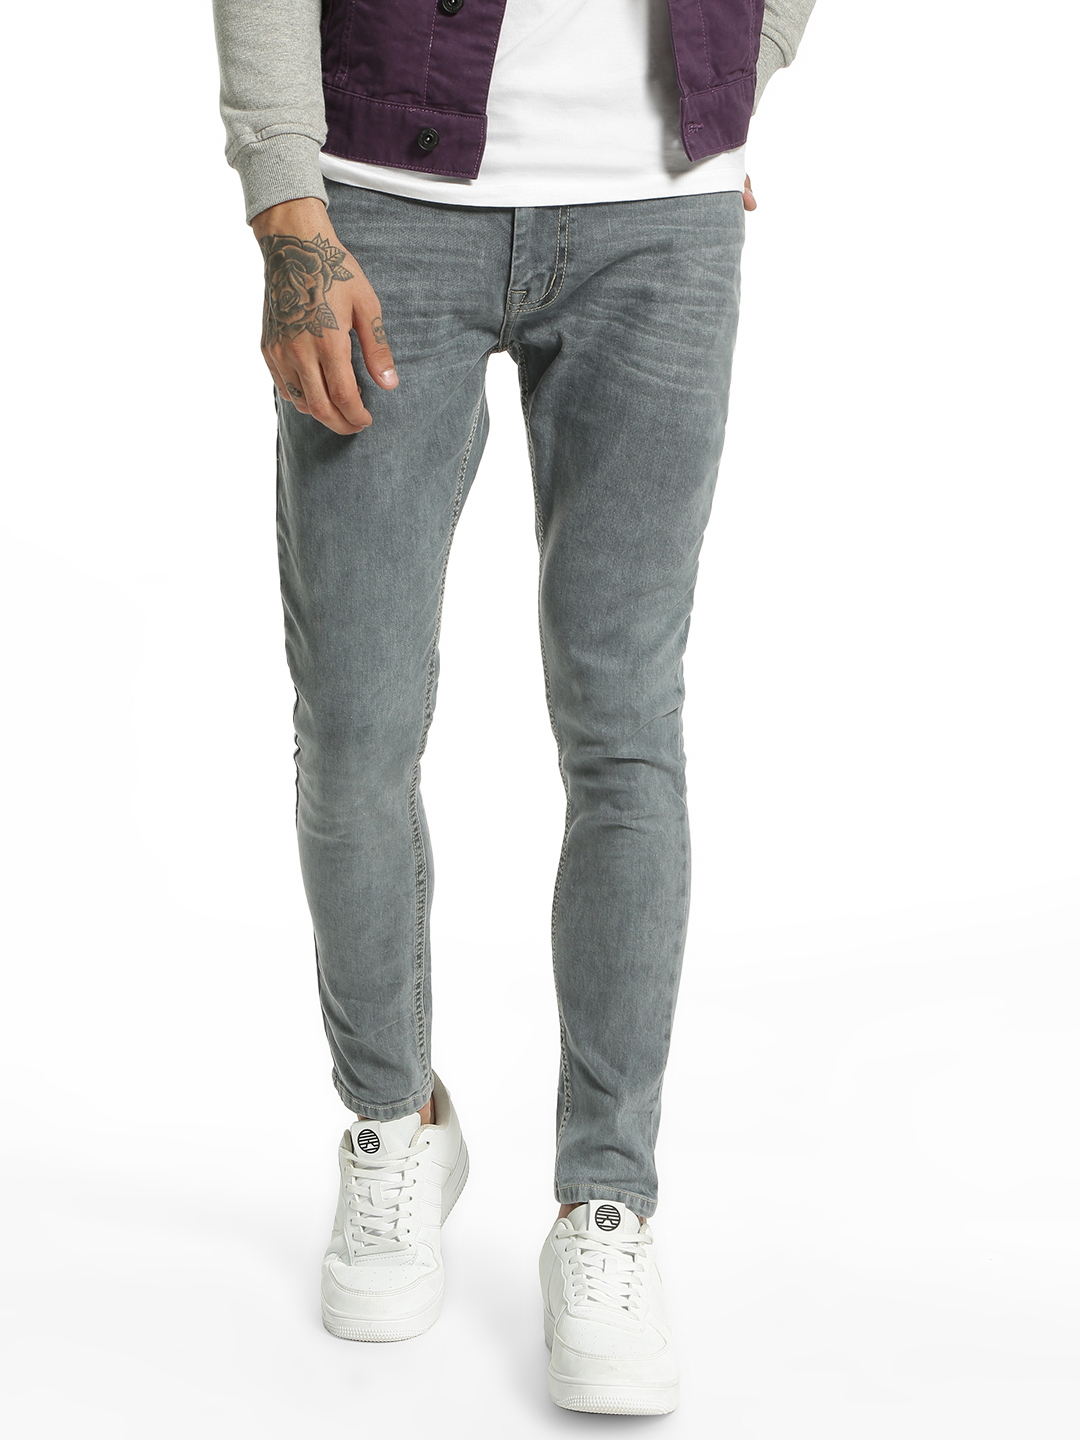 Adamo London Grey Washed Skinny Fit Jeans 1